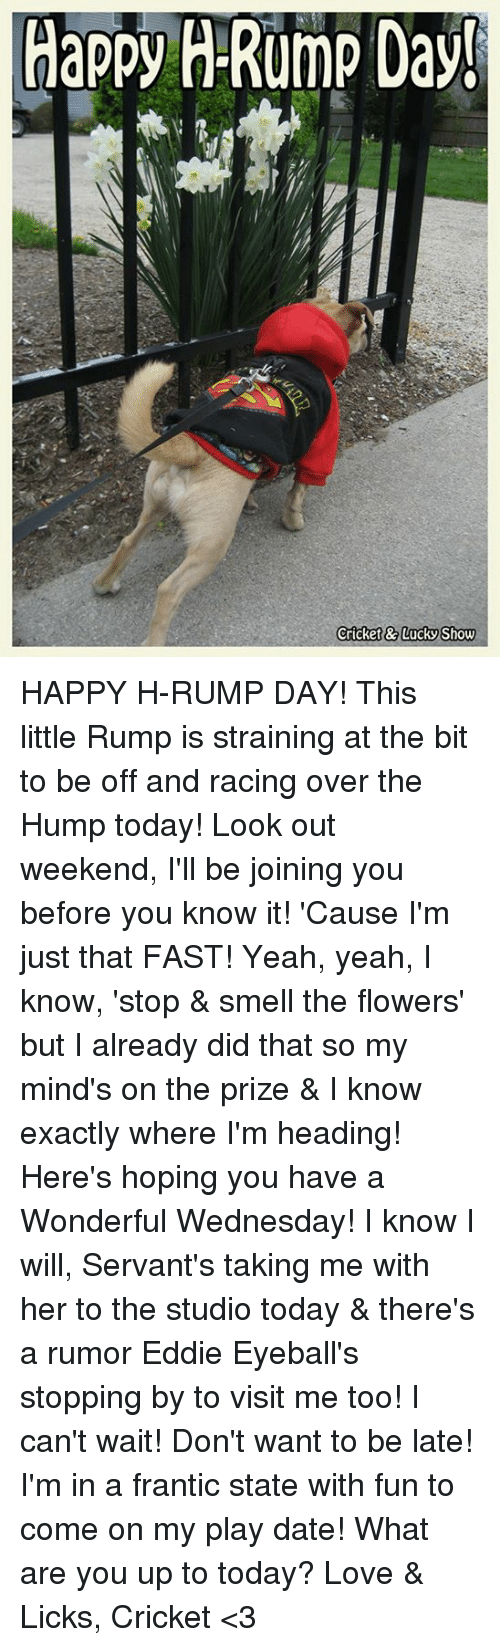 Have A Wonderful Wednesday: Happy H-Rump Day!  Cricket&7LUCKS how HAPPY H-RUMP DAY!  This little Rump is straining at the bit to be off and racing over the Hump today!  Look out weekend, I'll be joining you before you know it!  'Cause I'm just that FAST!  Yeah, yeah, I know, 'stop & smell the flowers' but I already did that so my mind's on the prize & I know exactly where I'm heading!  Here's hoping you have a Wonderful Wednesday!  I know I will, Servant's taking me with her to the studio today & there's a rumor Eddie Eyeball's stopping by to visit me too!  I can't wait!  Don't want to be late!  I'm in a frantic state with fun to come on my play date!  What are you up to today?  Love & Licks, Cricket <3